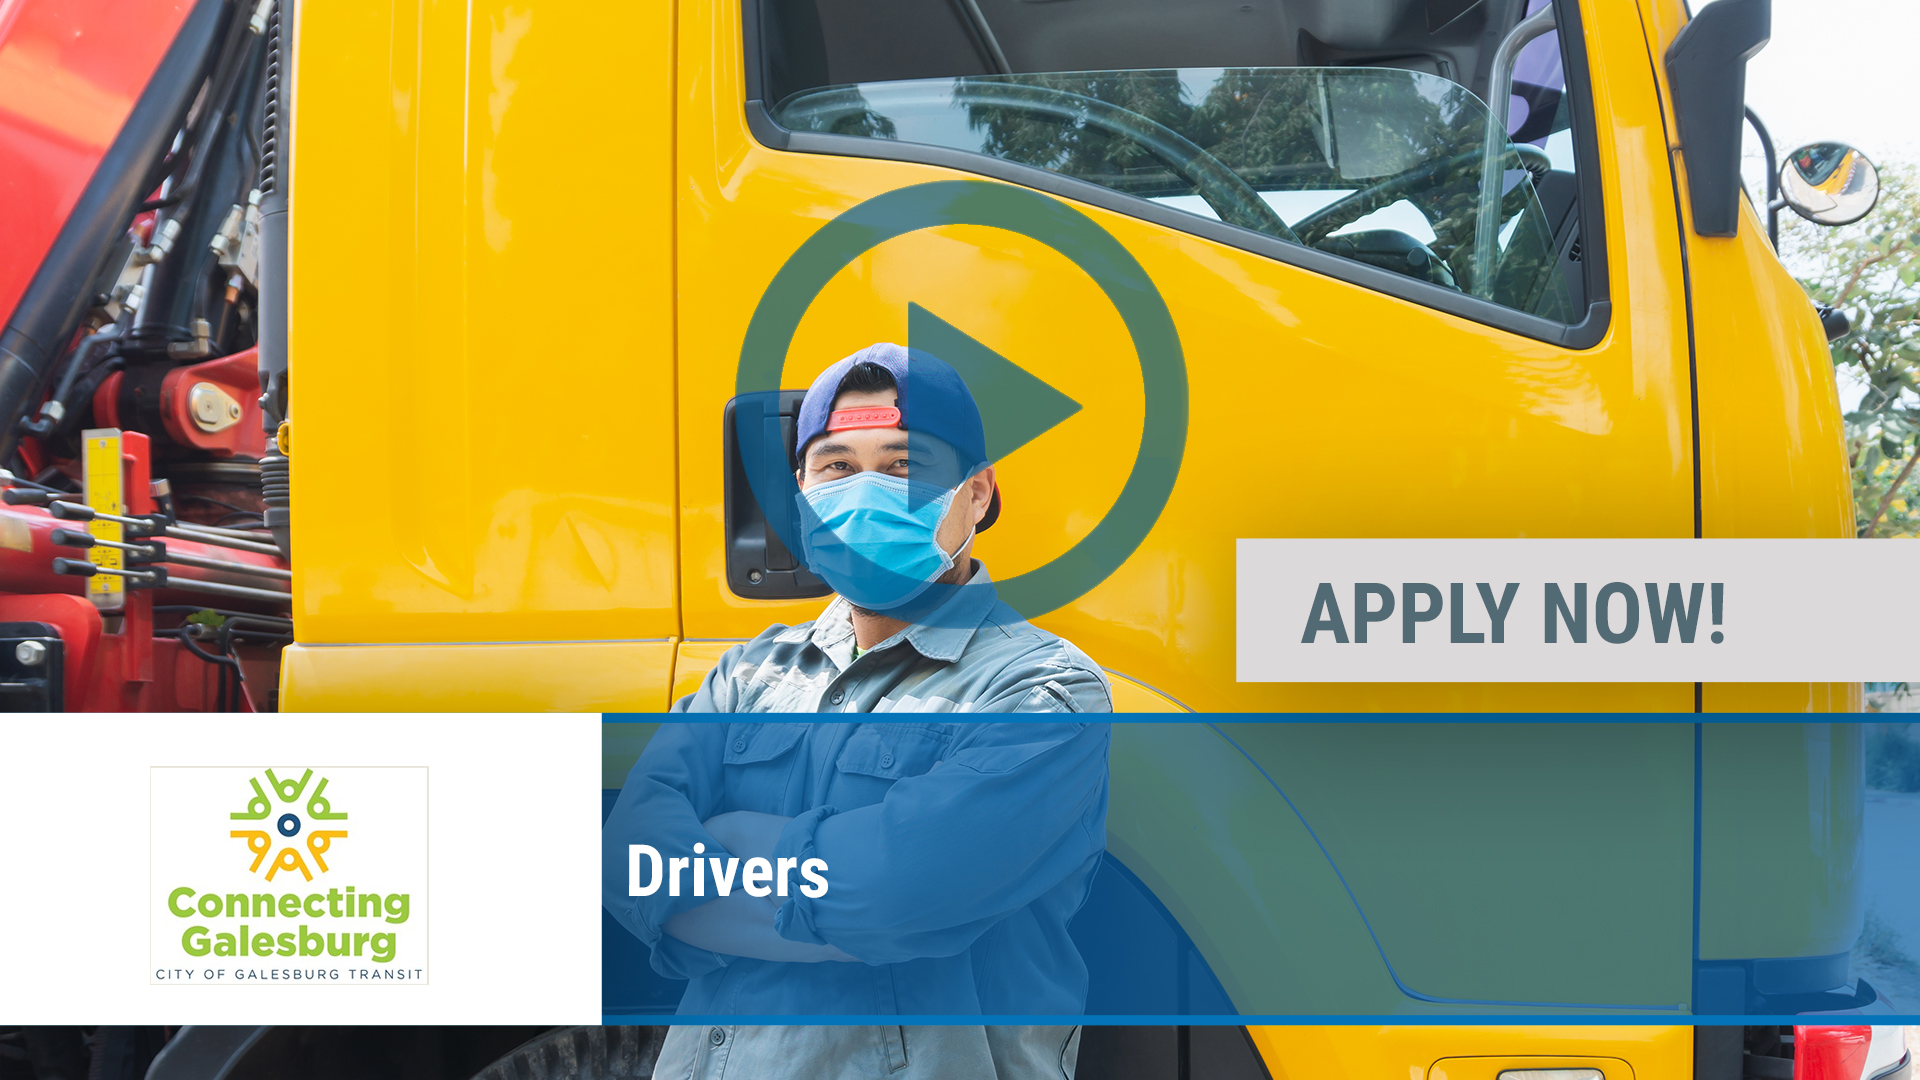 Watch our careers video for available job opening Drivers in Galesburg, IL